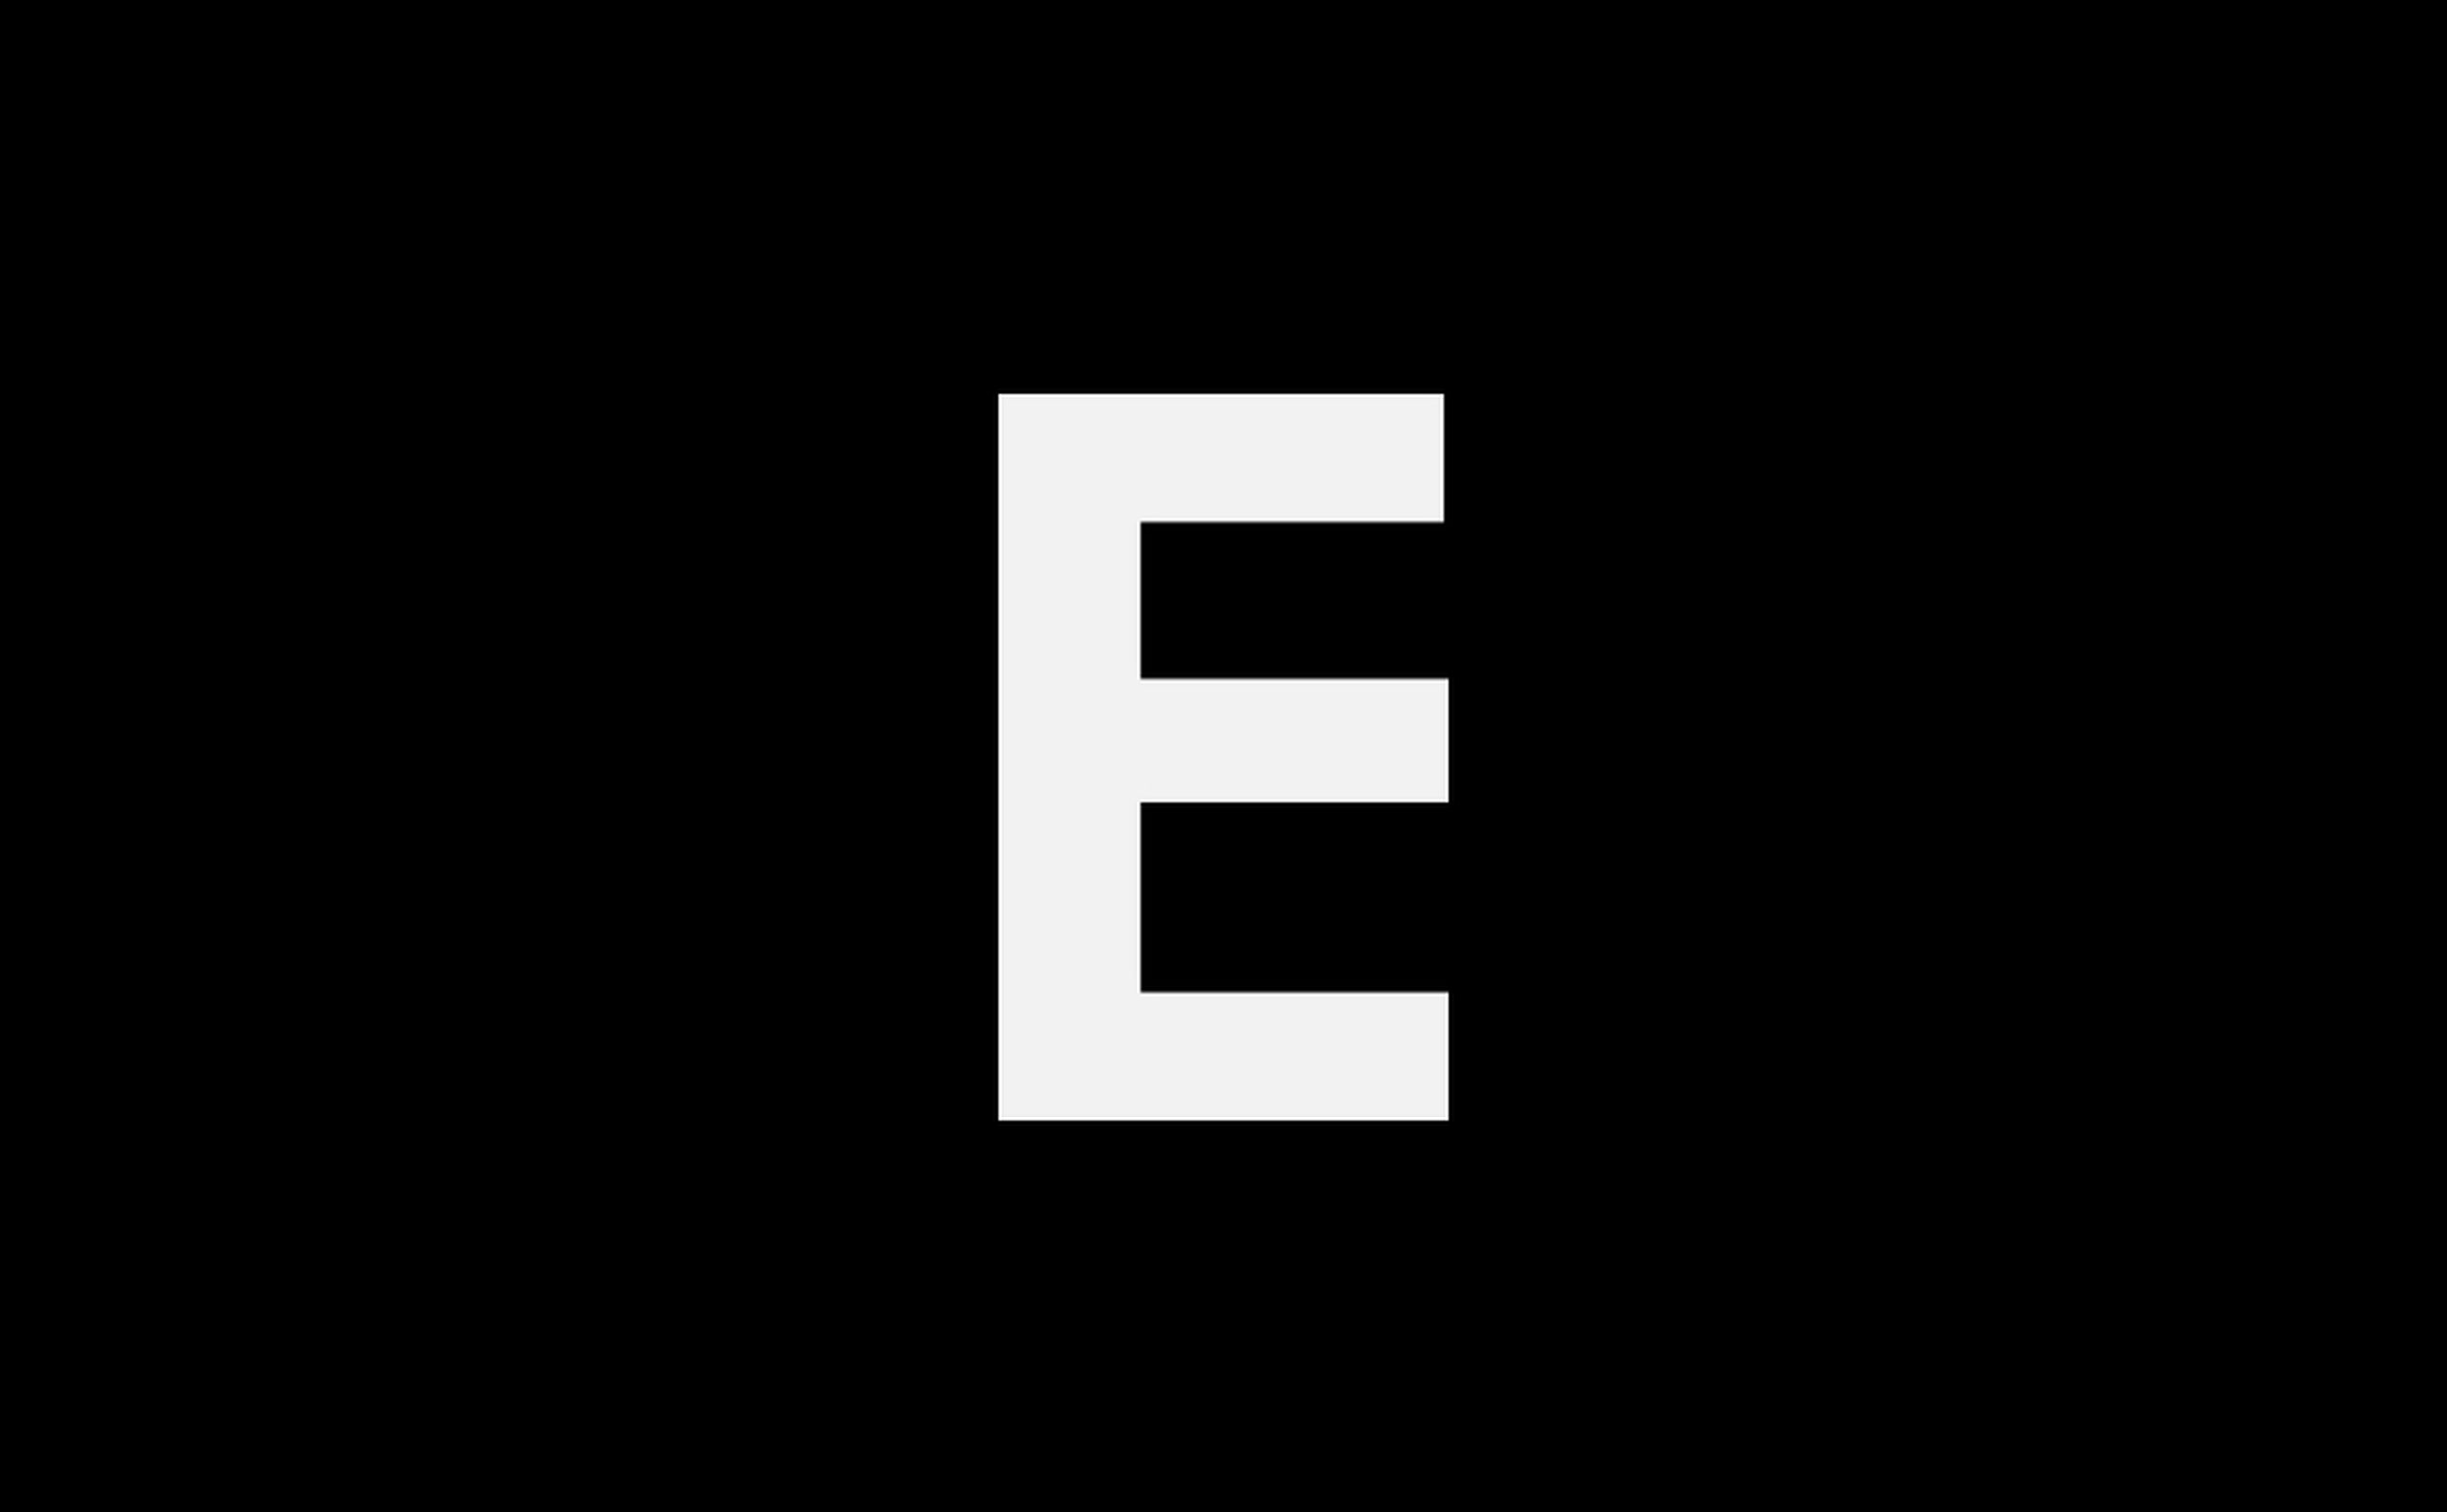 flowering plant, flower, beauty in nature, growth, vulnerability, fragility, plant, freshness, flower head, inflorescence, leaf, plant part, petal, close-up, nature, green color, focus on foreground, day, no people, botany, lantana, outdoors